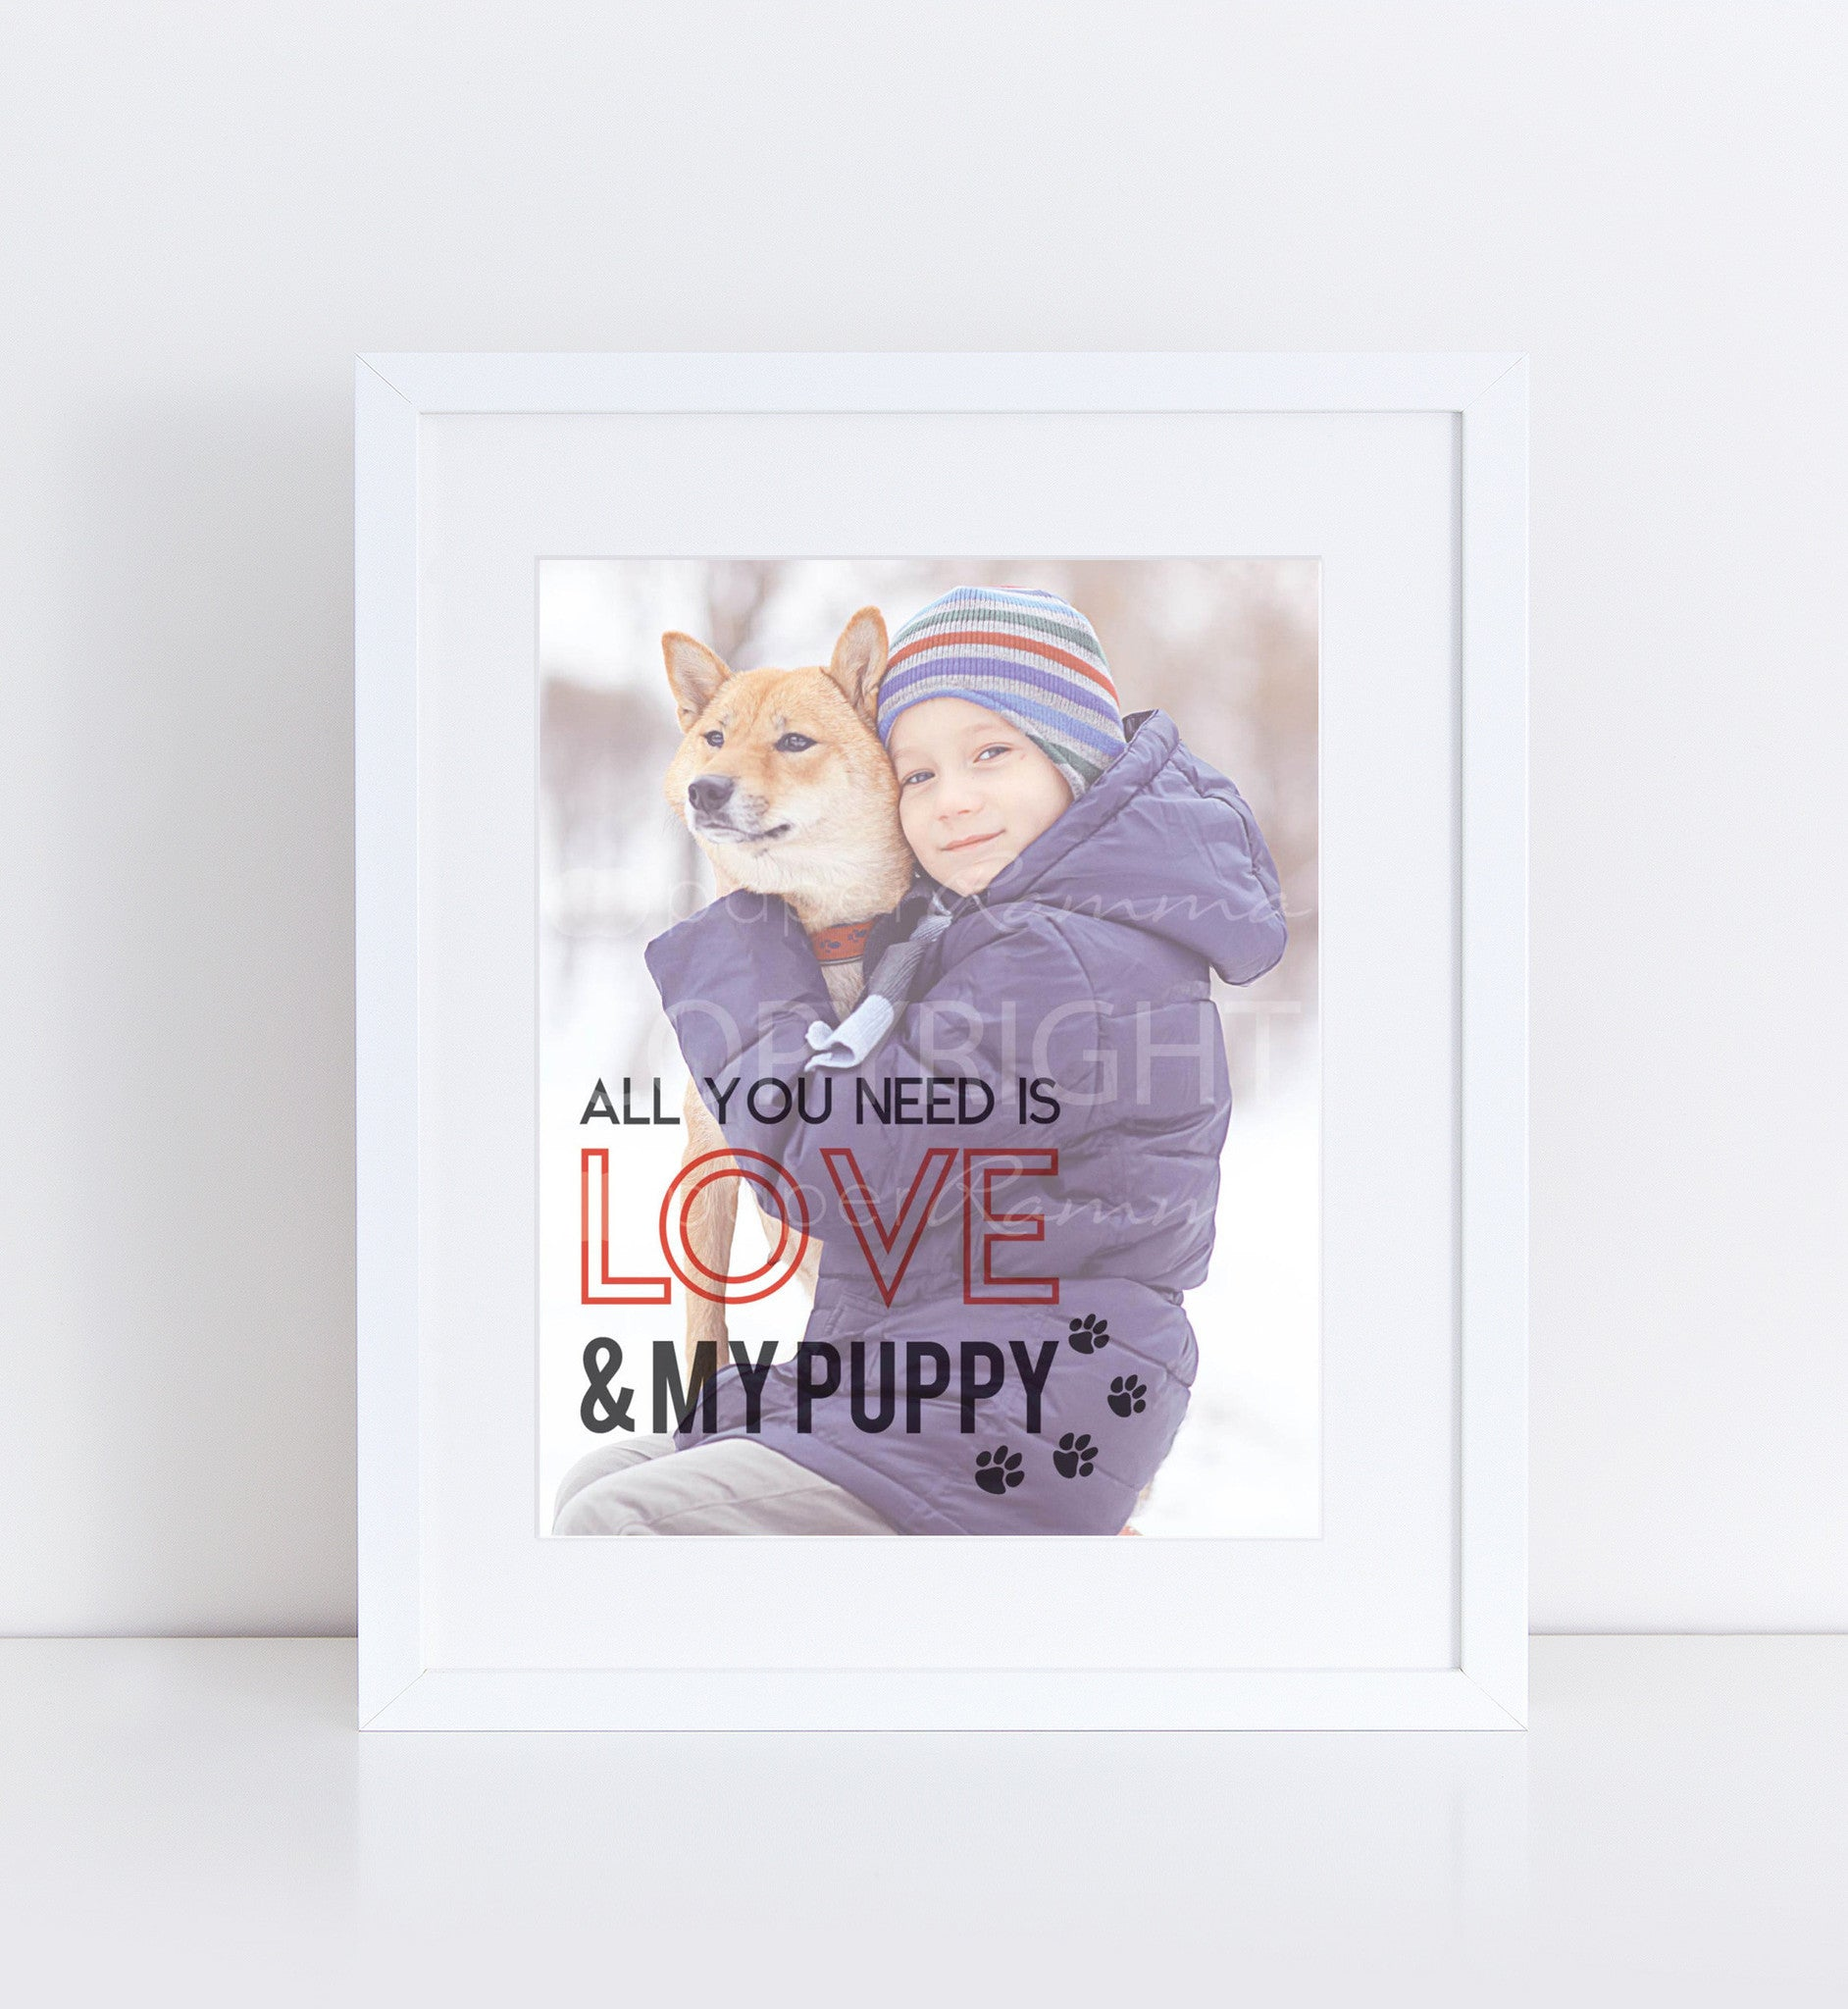 Love & My Puppy Personalized Photo Quote